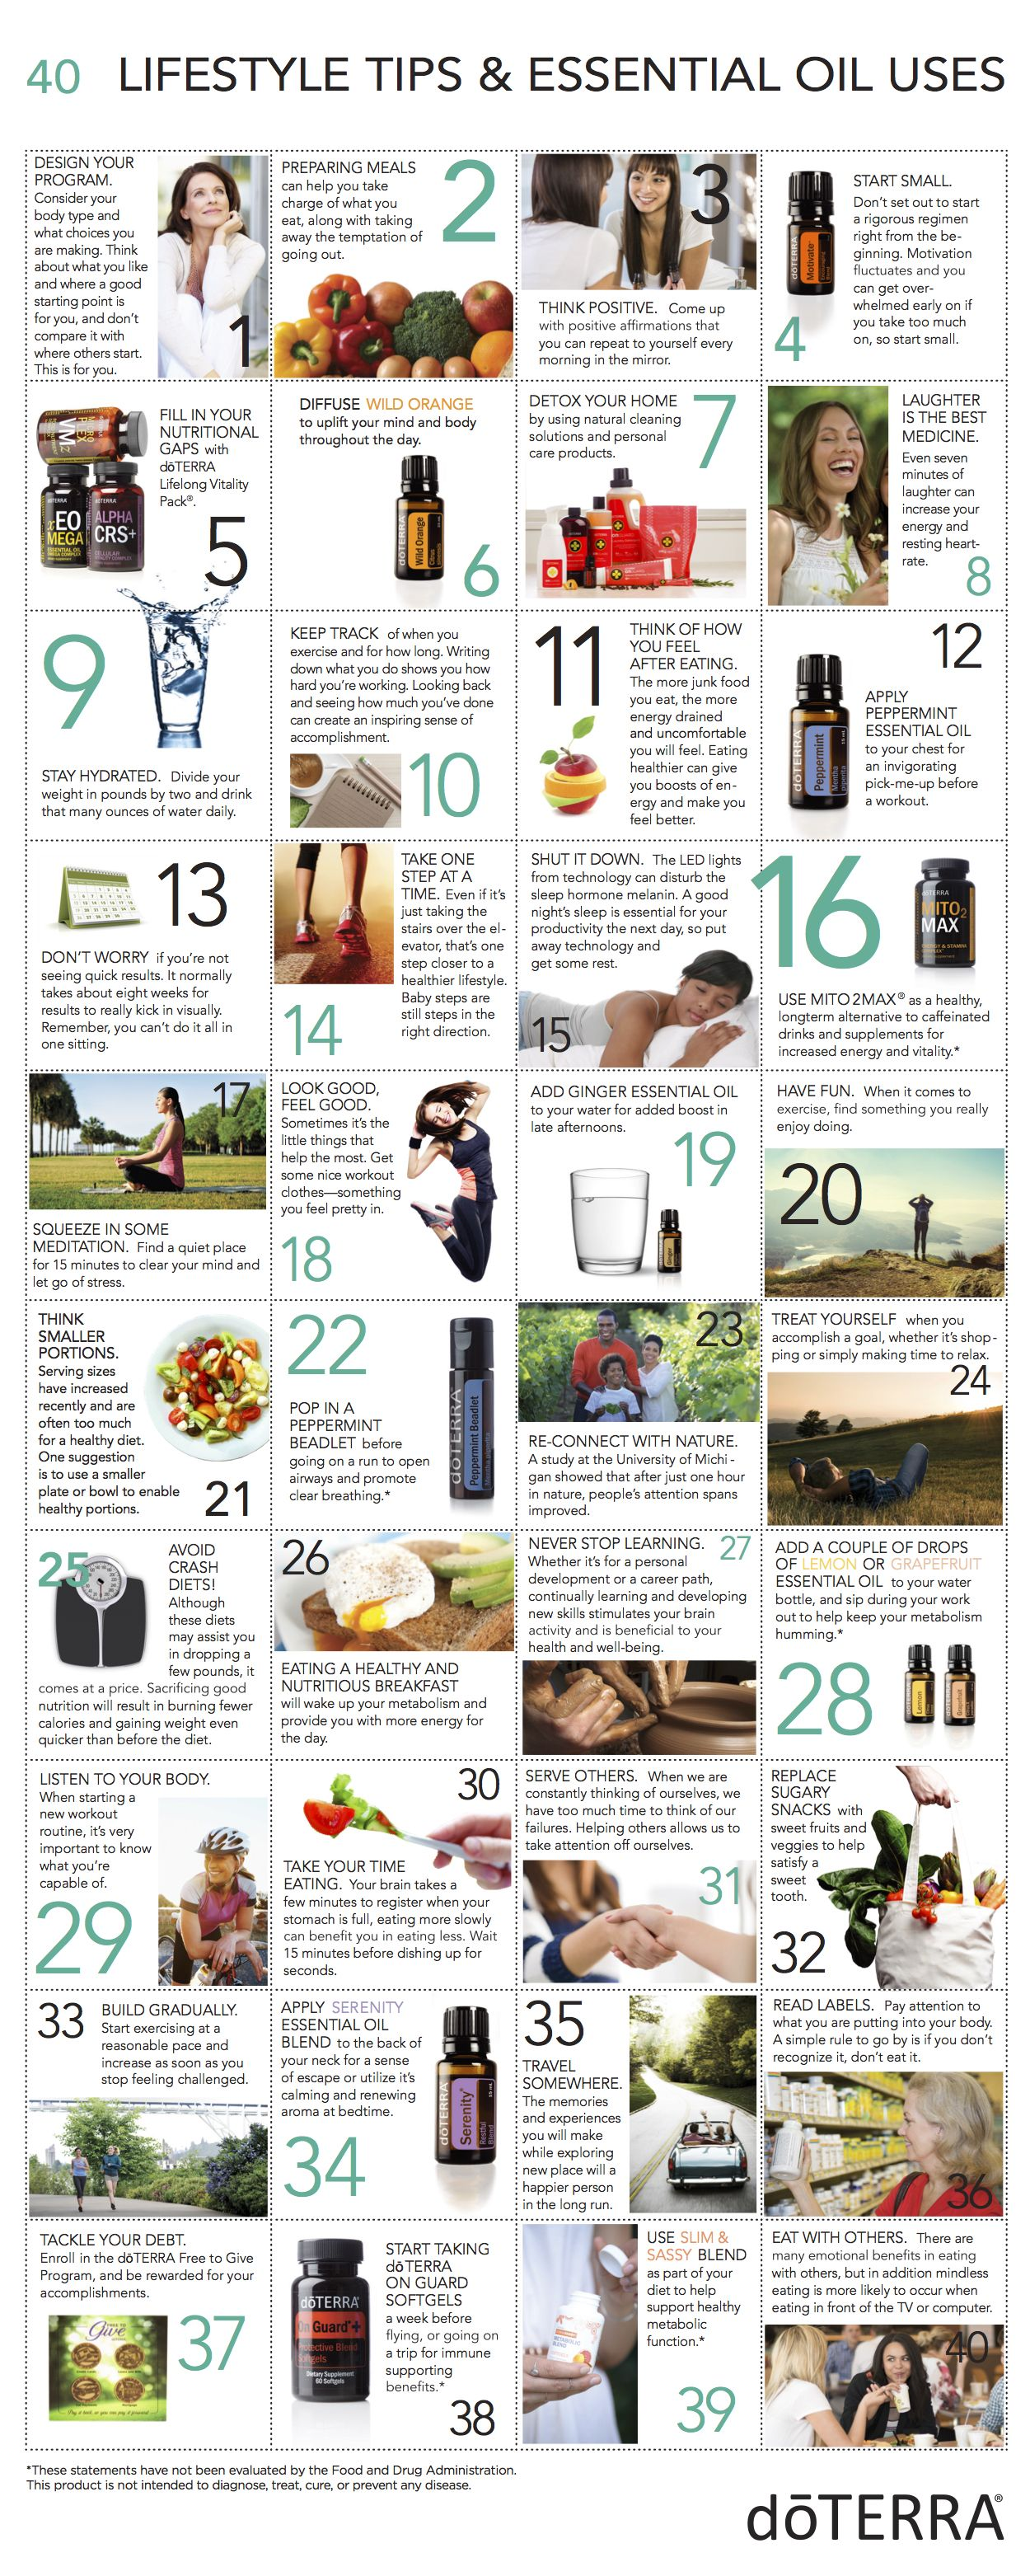 40 Lifestyle Tips and Essential Oil Uses